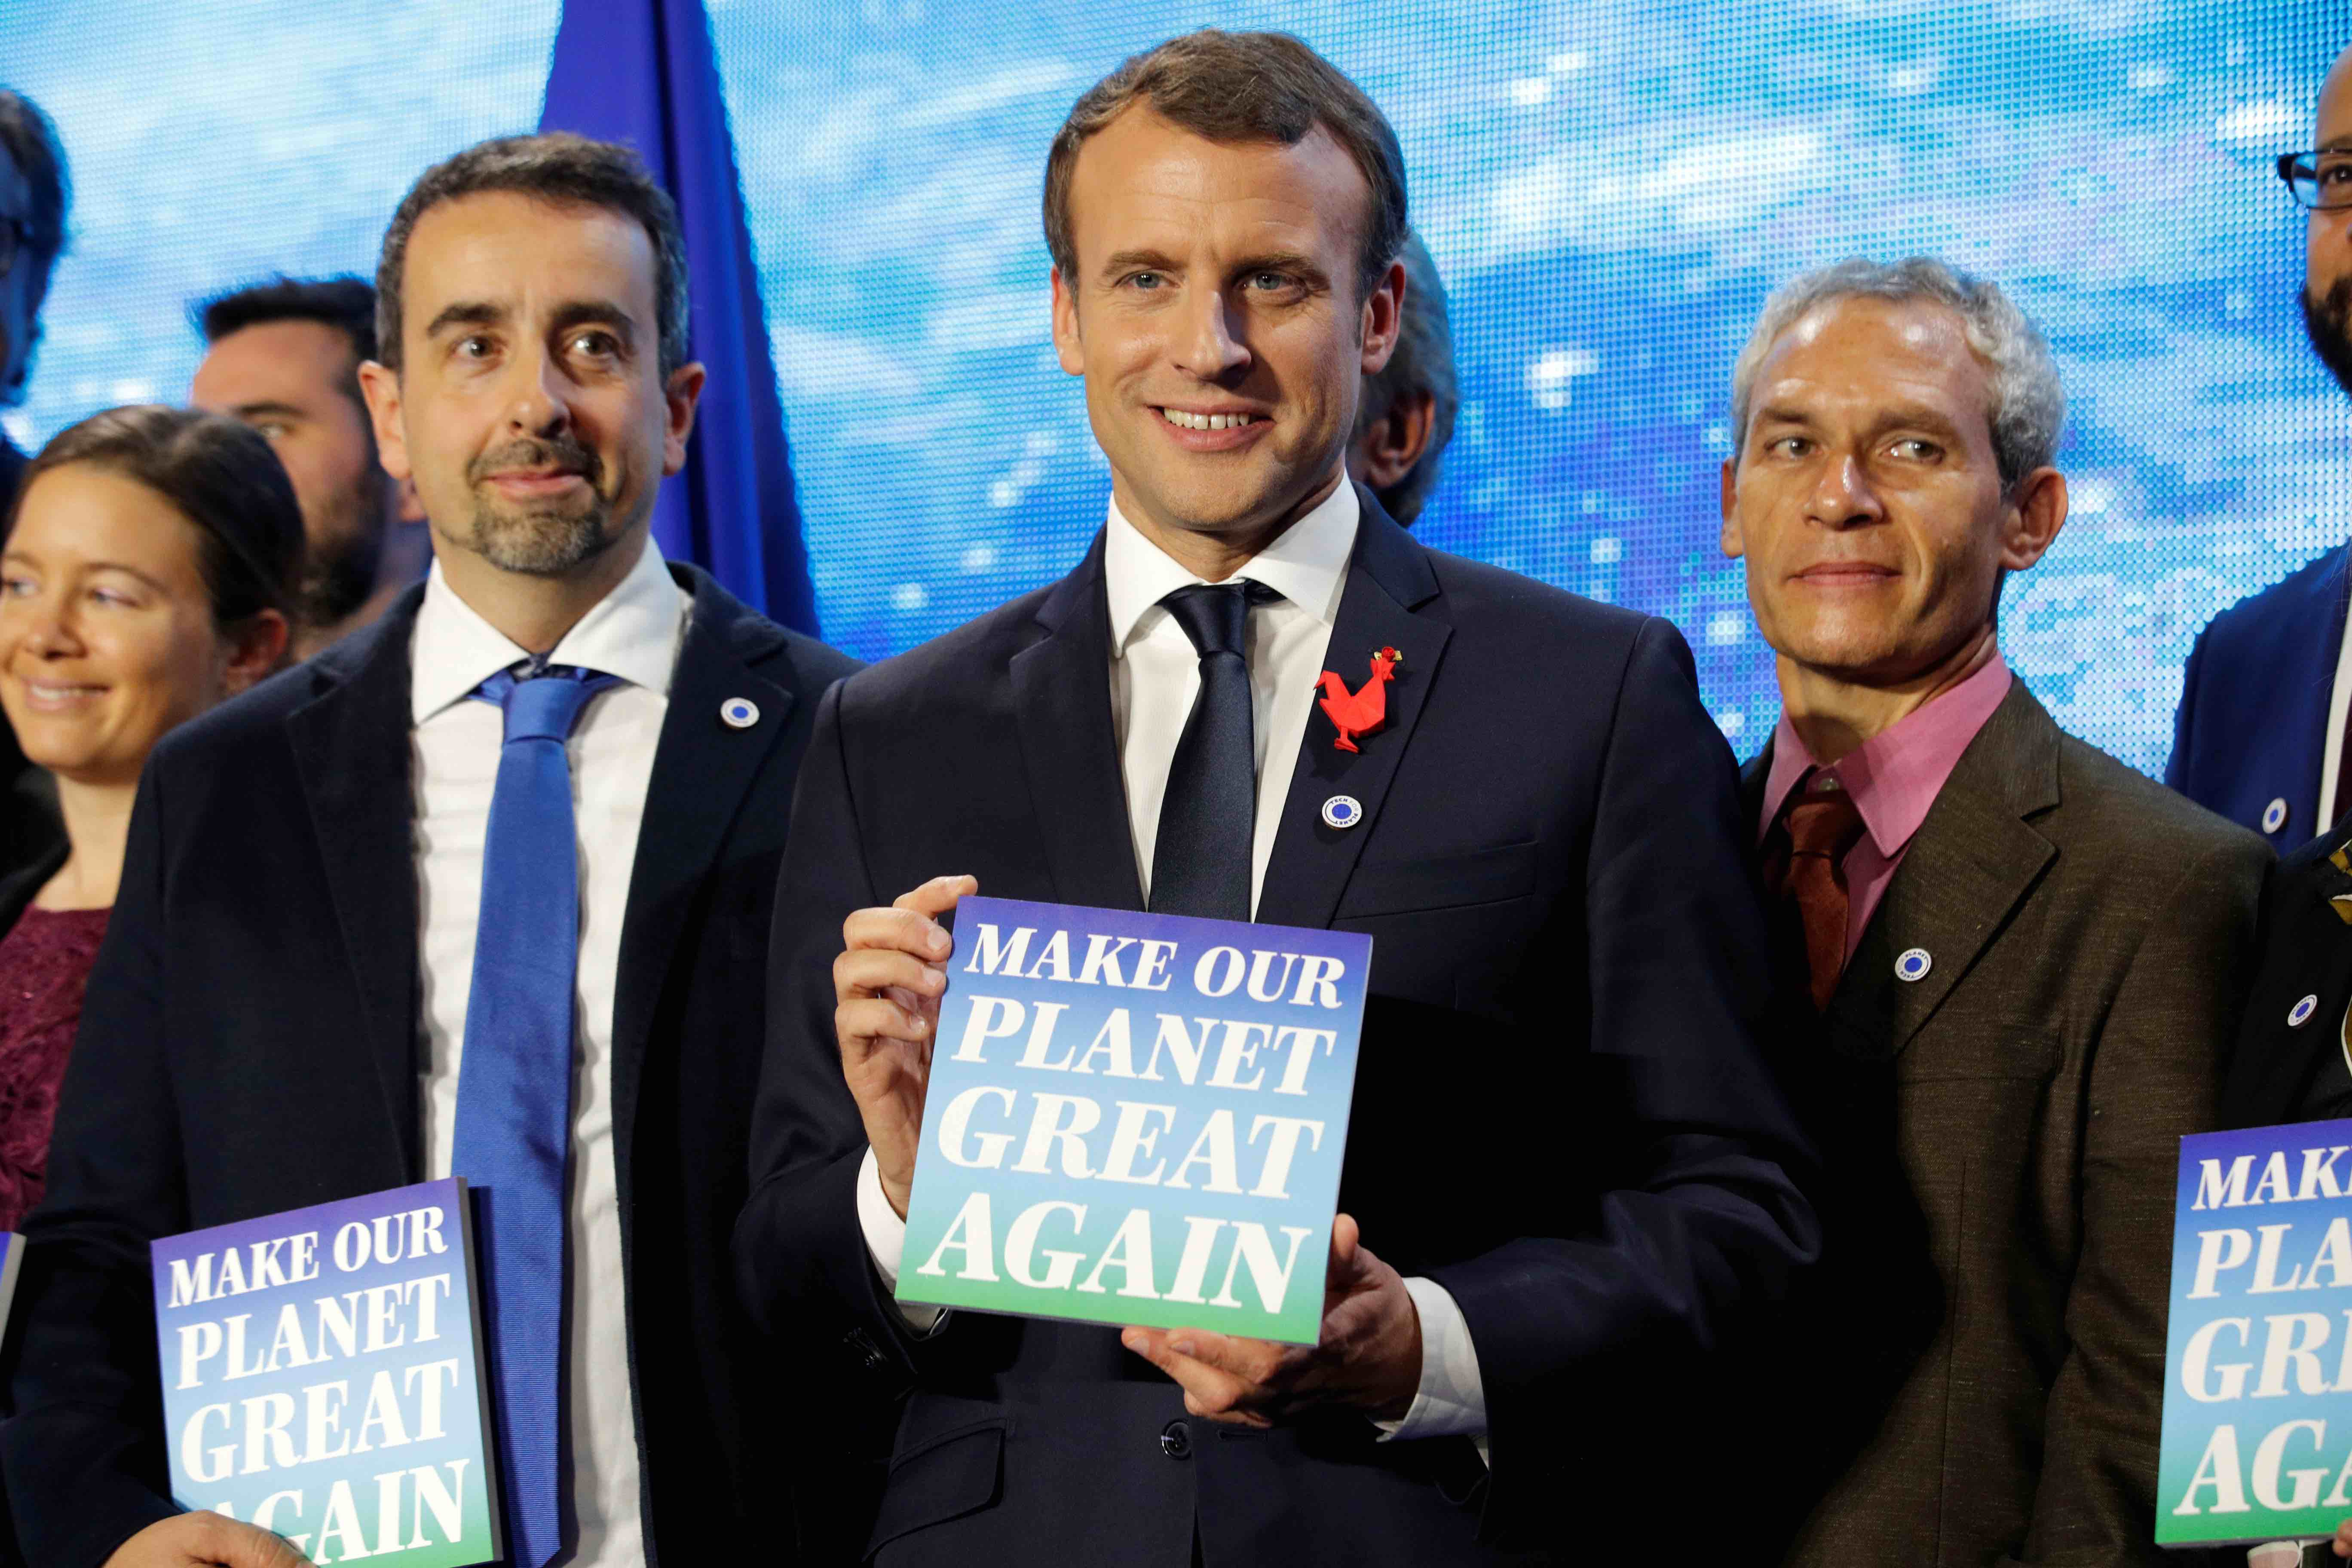 France: President Macron Awards Climate Grants to US-Based Scientists on Summit Eve